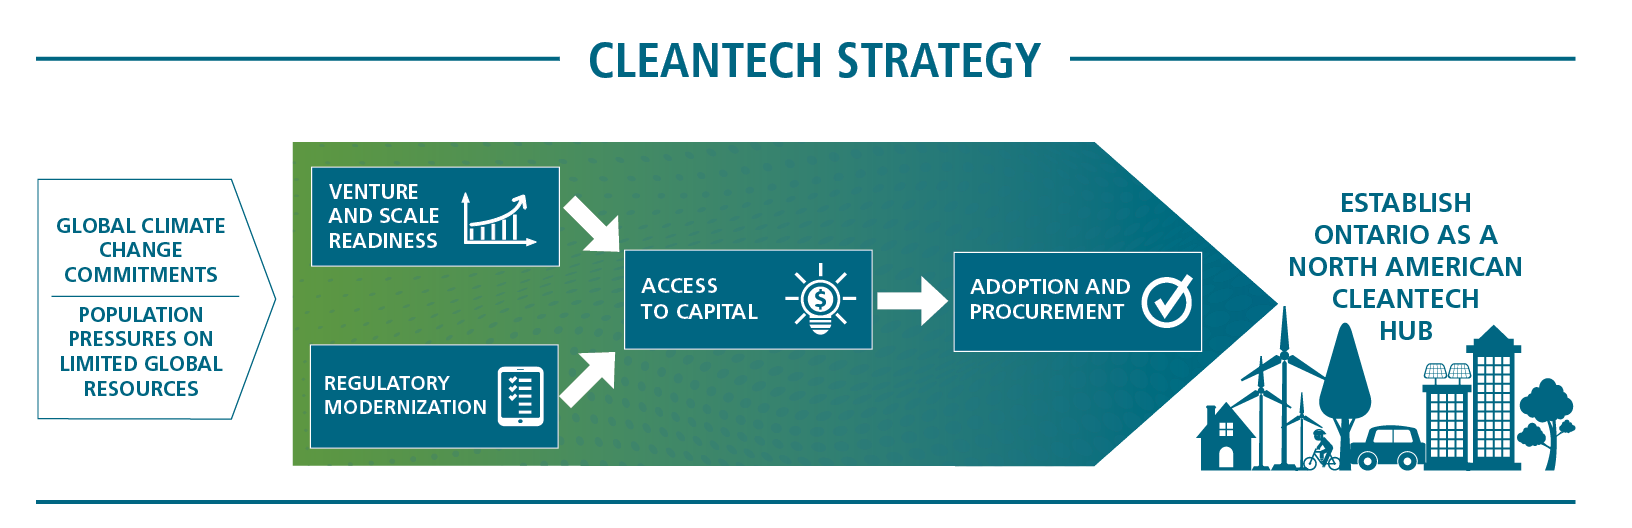 This diagram demonstrates how the four pillars of the cleantech strategy interact to establish Ontario as a North American cleantech hub and meet Ontario's climate change commitments.    The pillars, Venture and Scale Readiness and Regulatory Modernization interact to support firms to improve Access to Capital, which is pillar 2.  Once a company has gained access to capital, Adoption and Procurement, which is pillar 4, ensures the early adoption and procurement of these technologies.